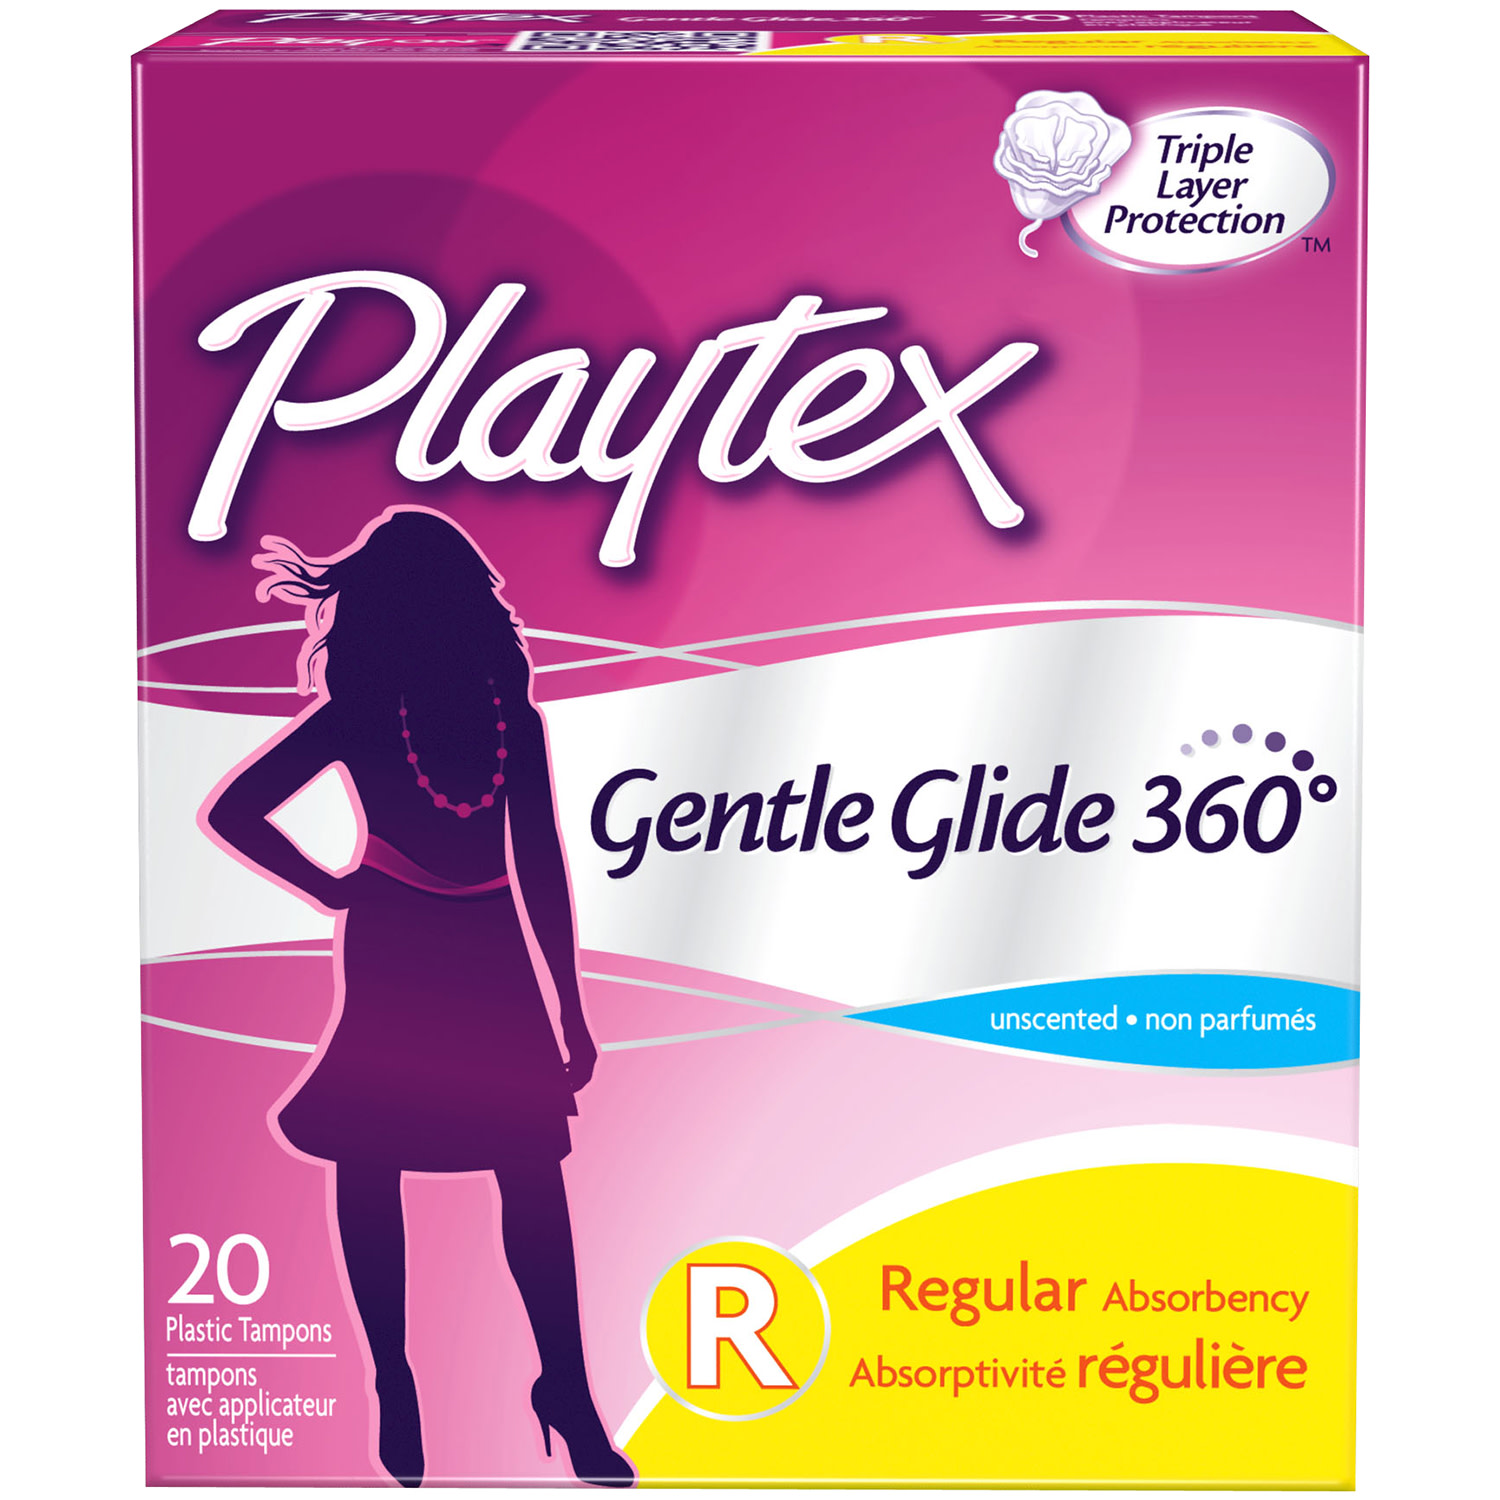 Playtex Gentle Glide Tampons Unscented Regular Absorbency - 20 Count